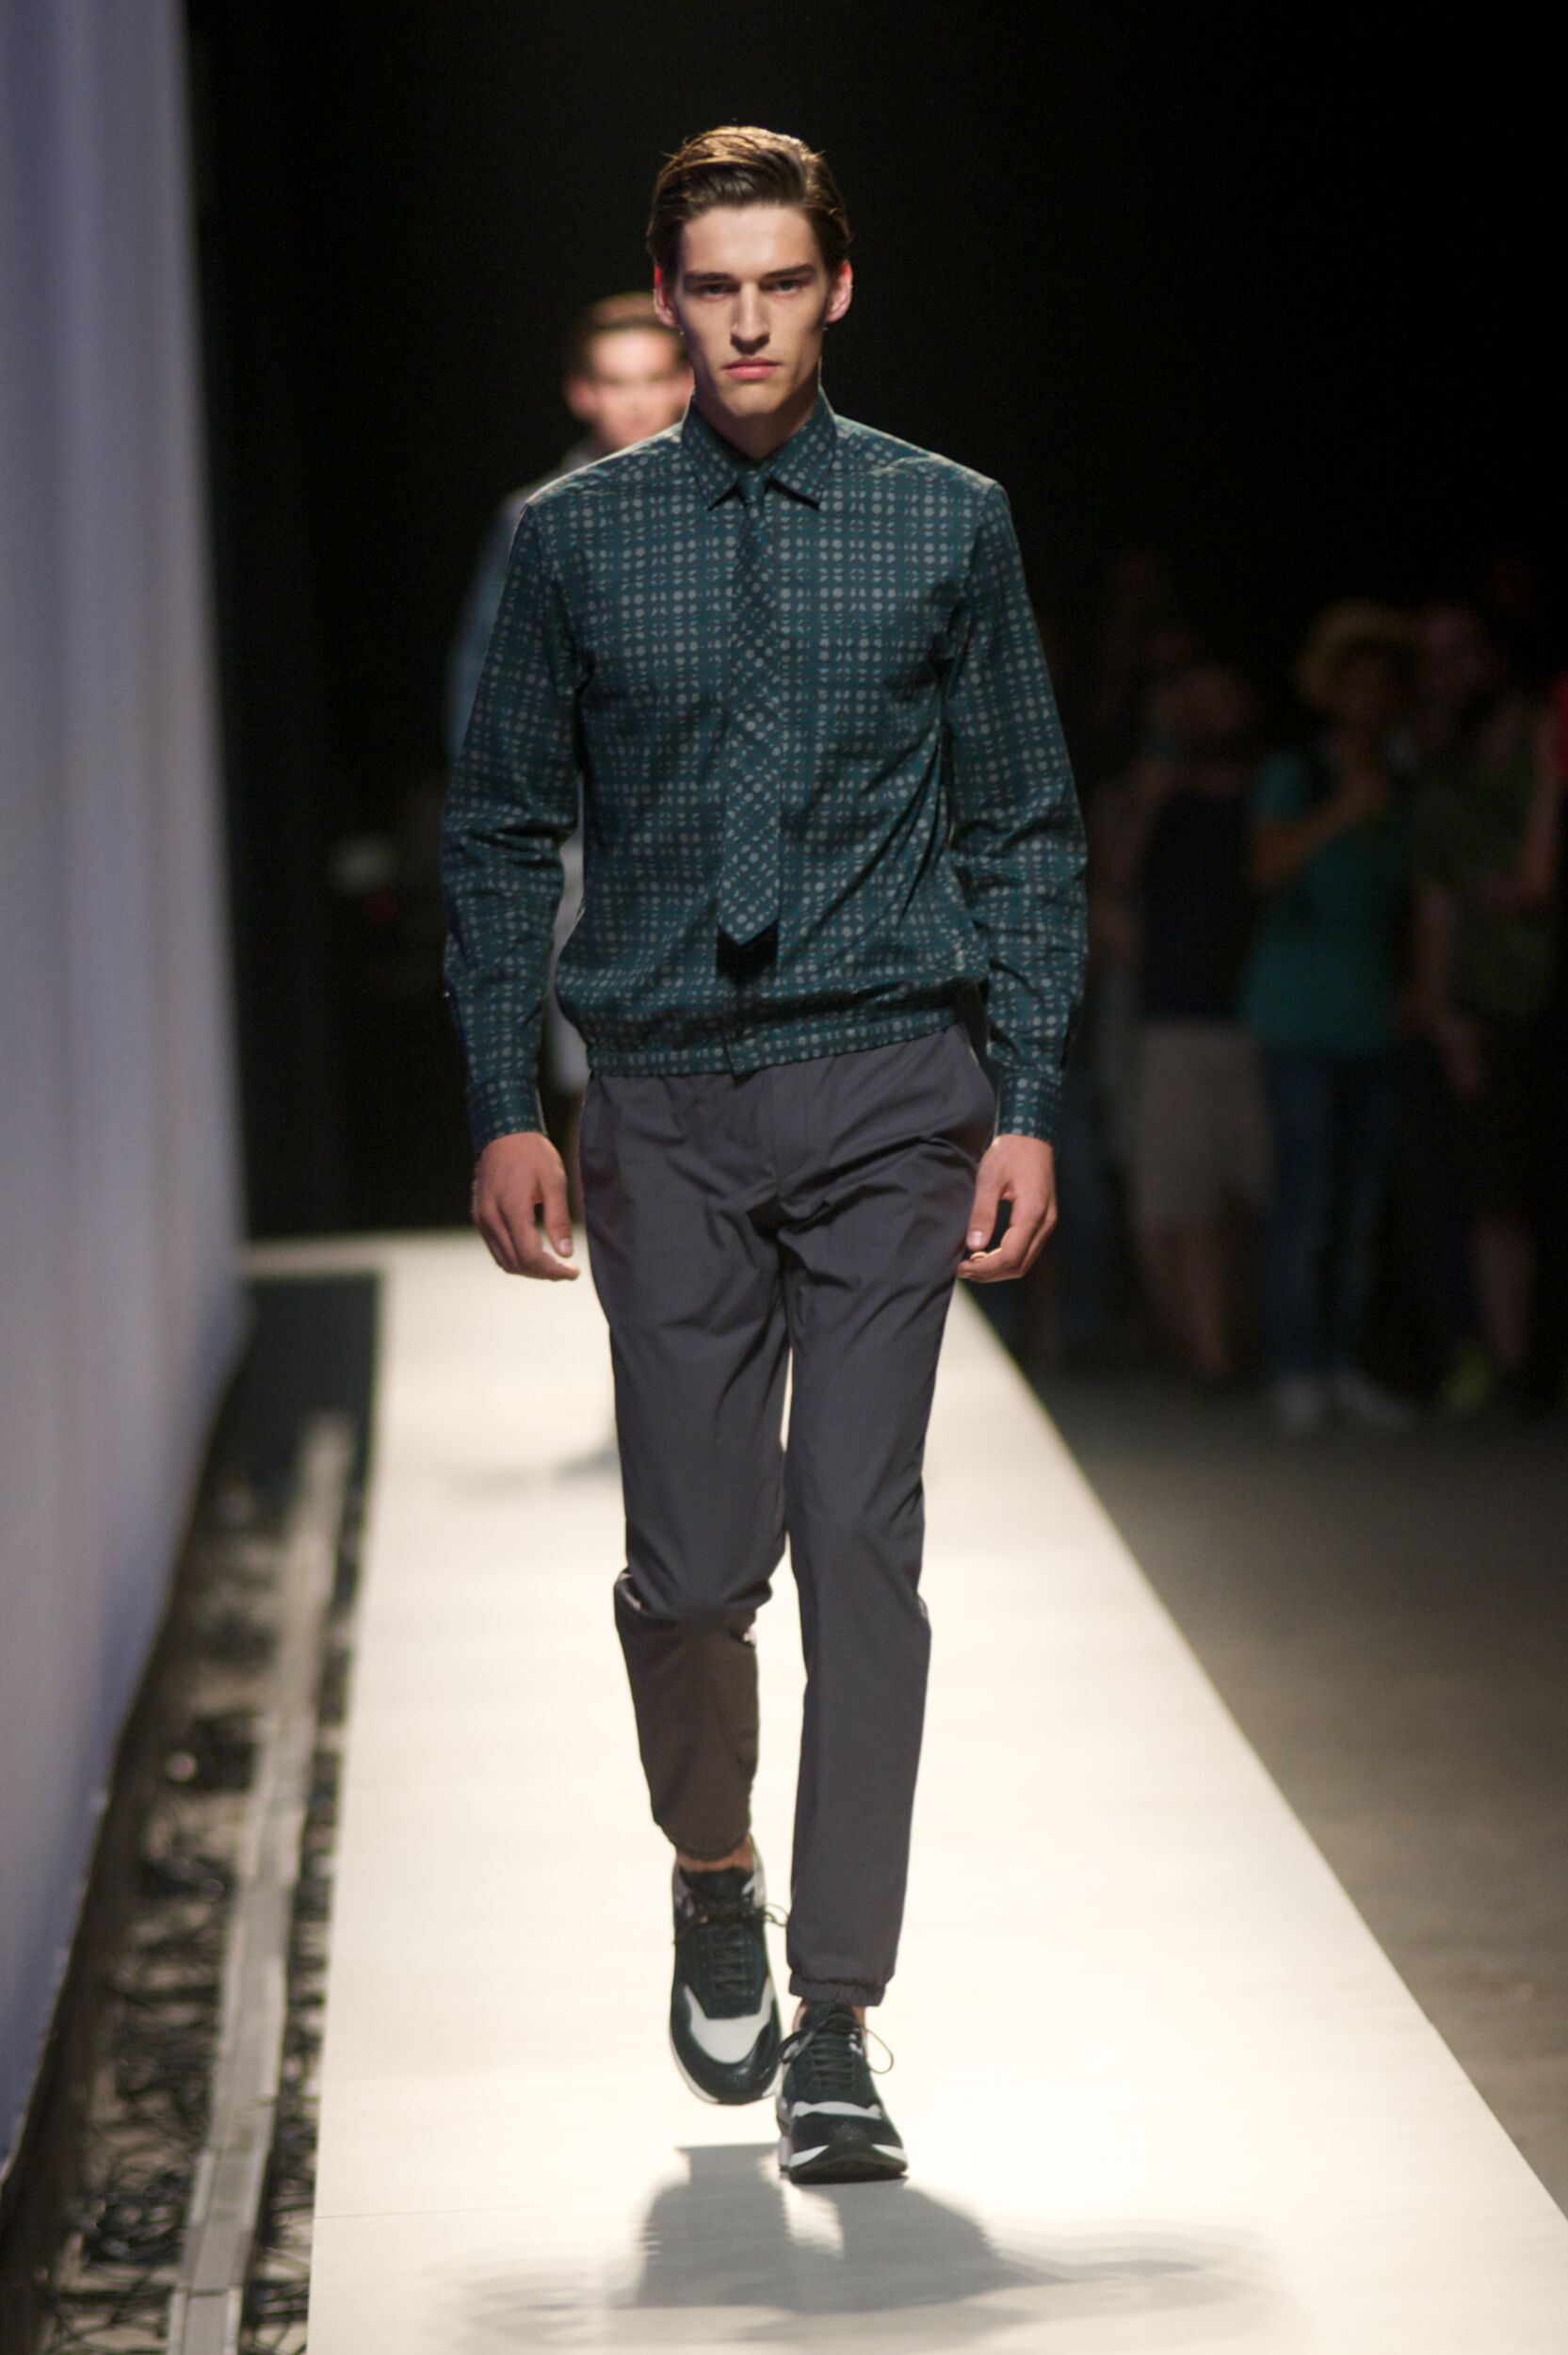 Runway Z Zegna Spring Summer 2015 Men's Collection Florence Pitti Immagine Uomo